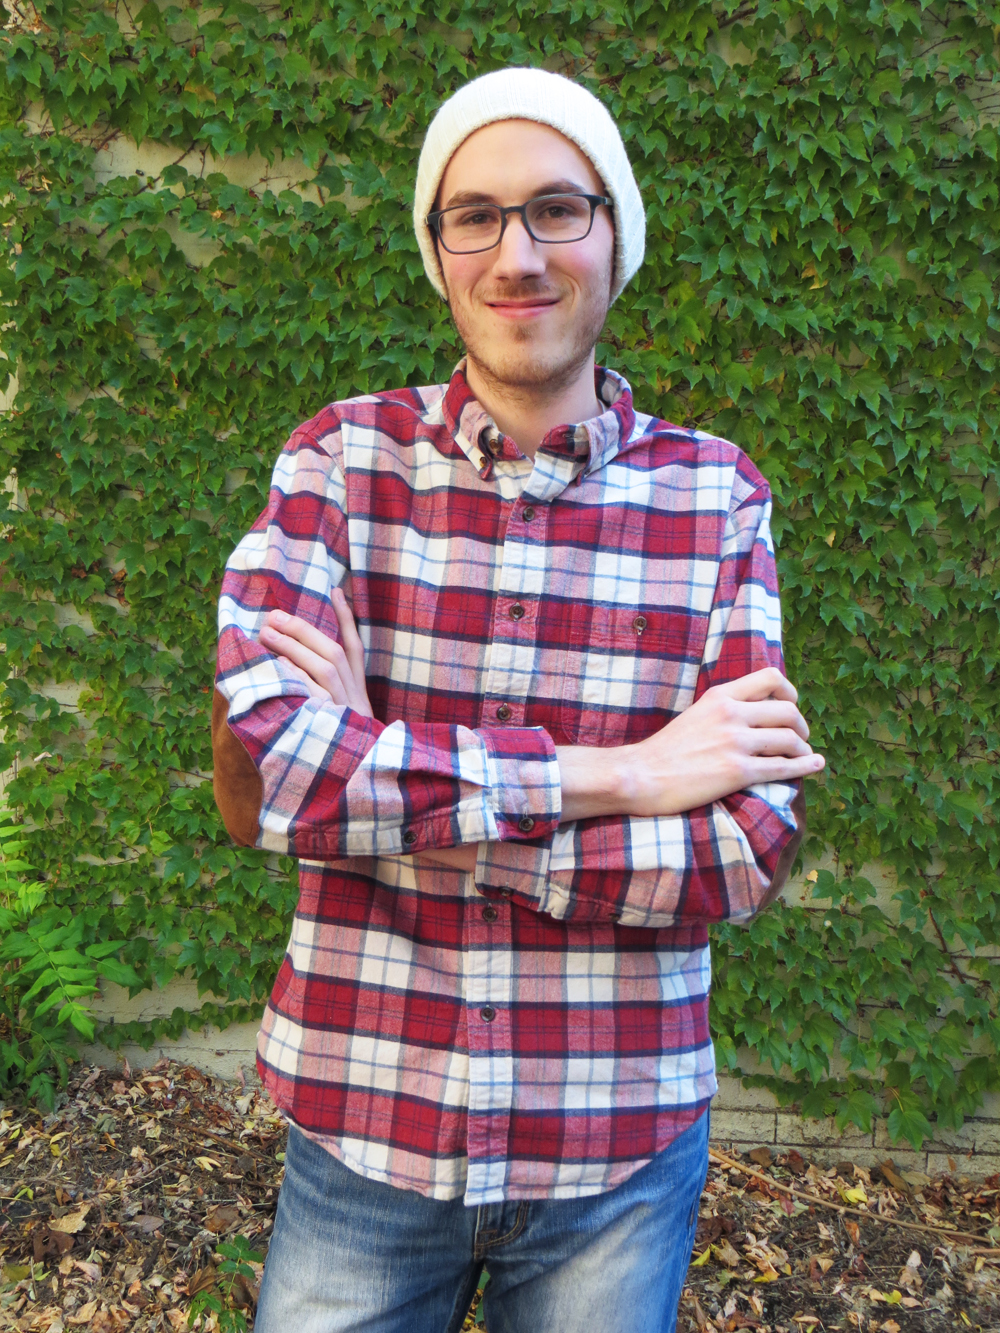 His grad student style: Plaid workshirt, skinny jeans, beanie -- Cotton Cashmere Cat Hair